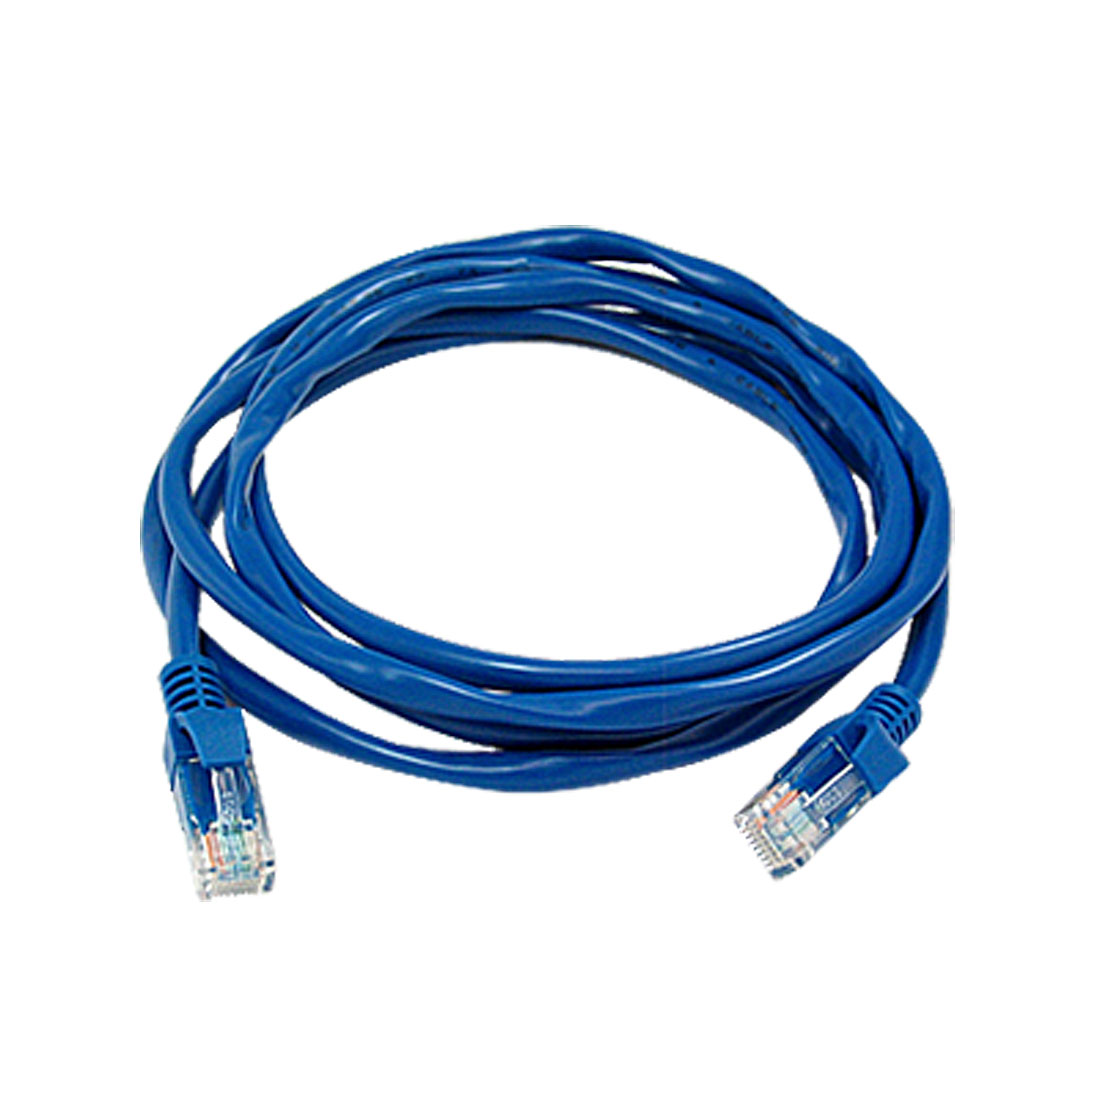 6 ft Feet 1.8M RJ45 CAT5 CAT 5 LAN Network Cable Blue for Ethernet Router Switch